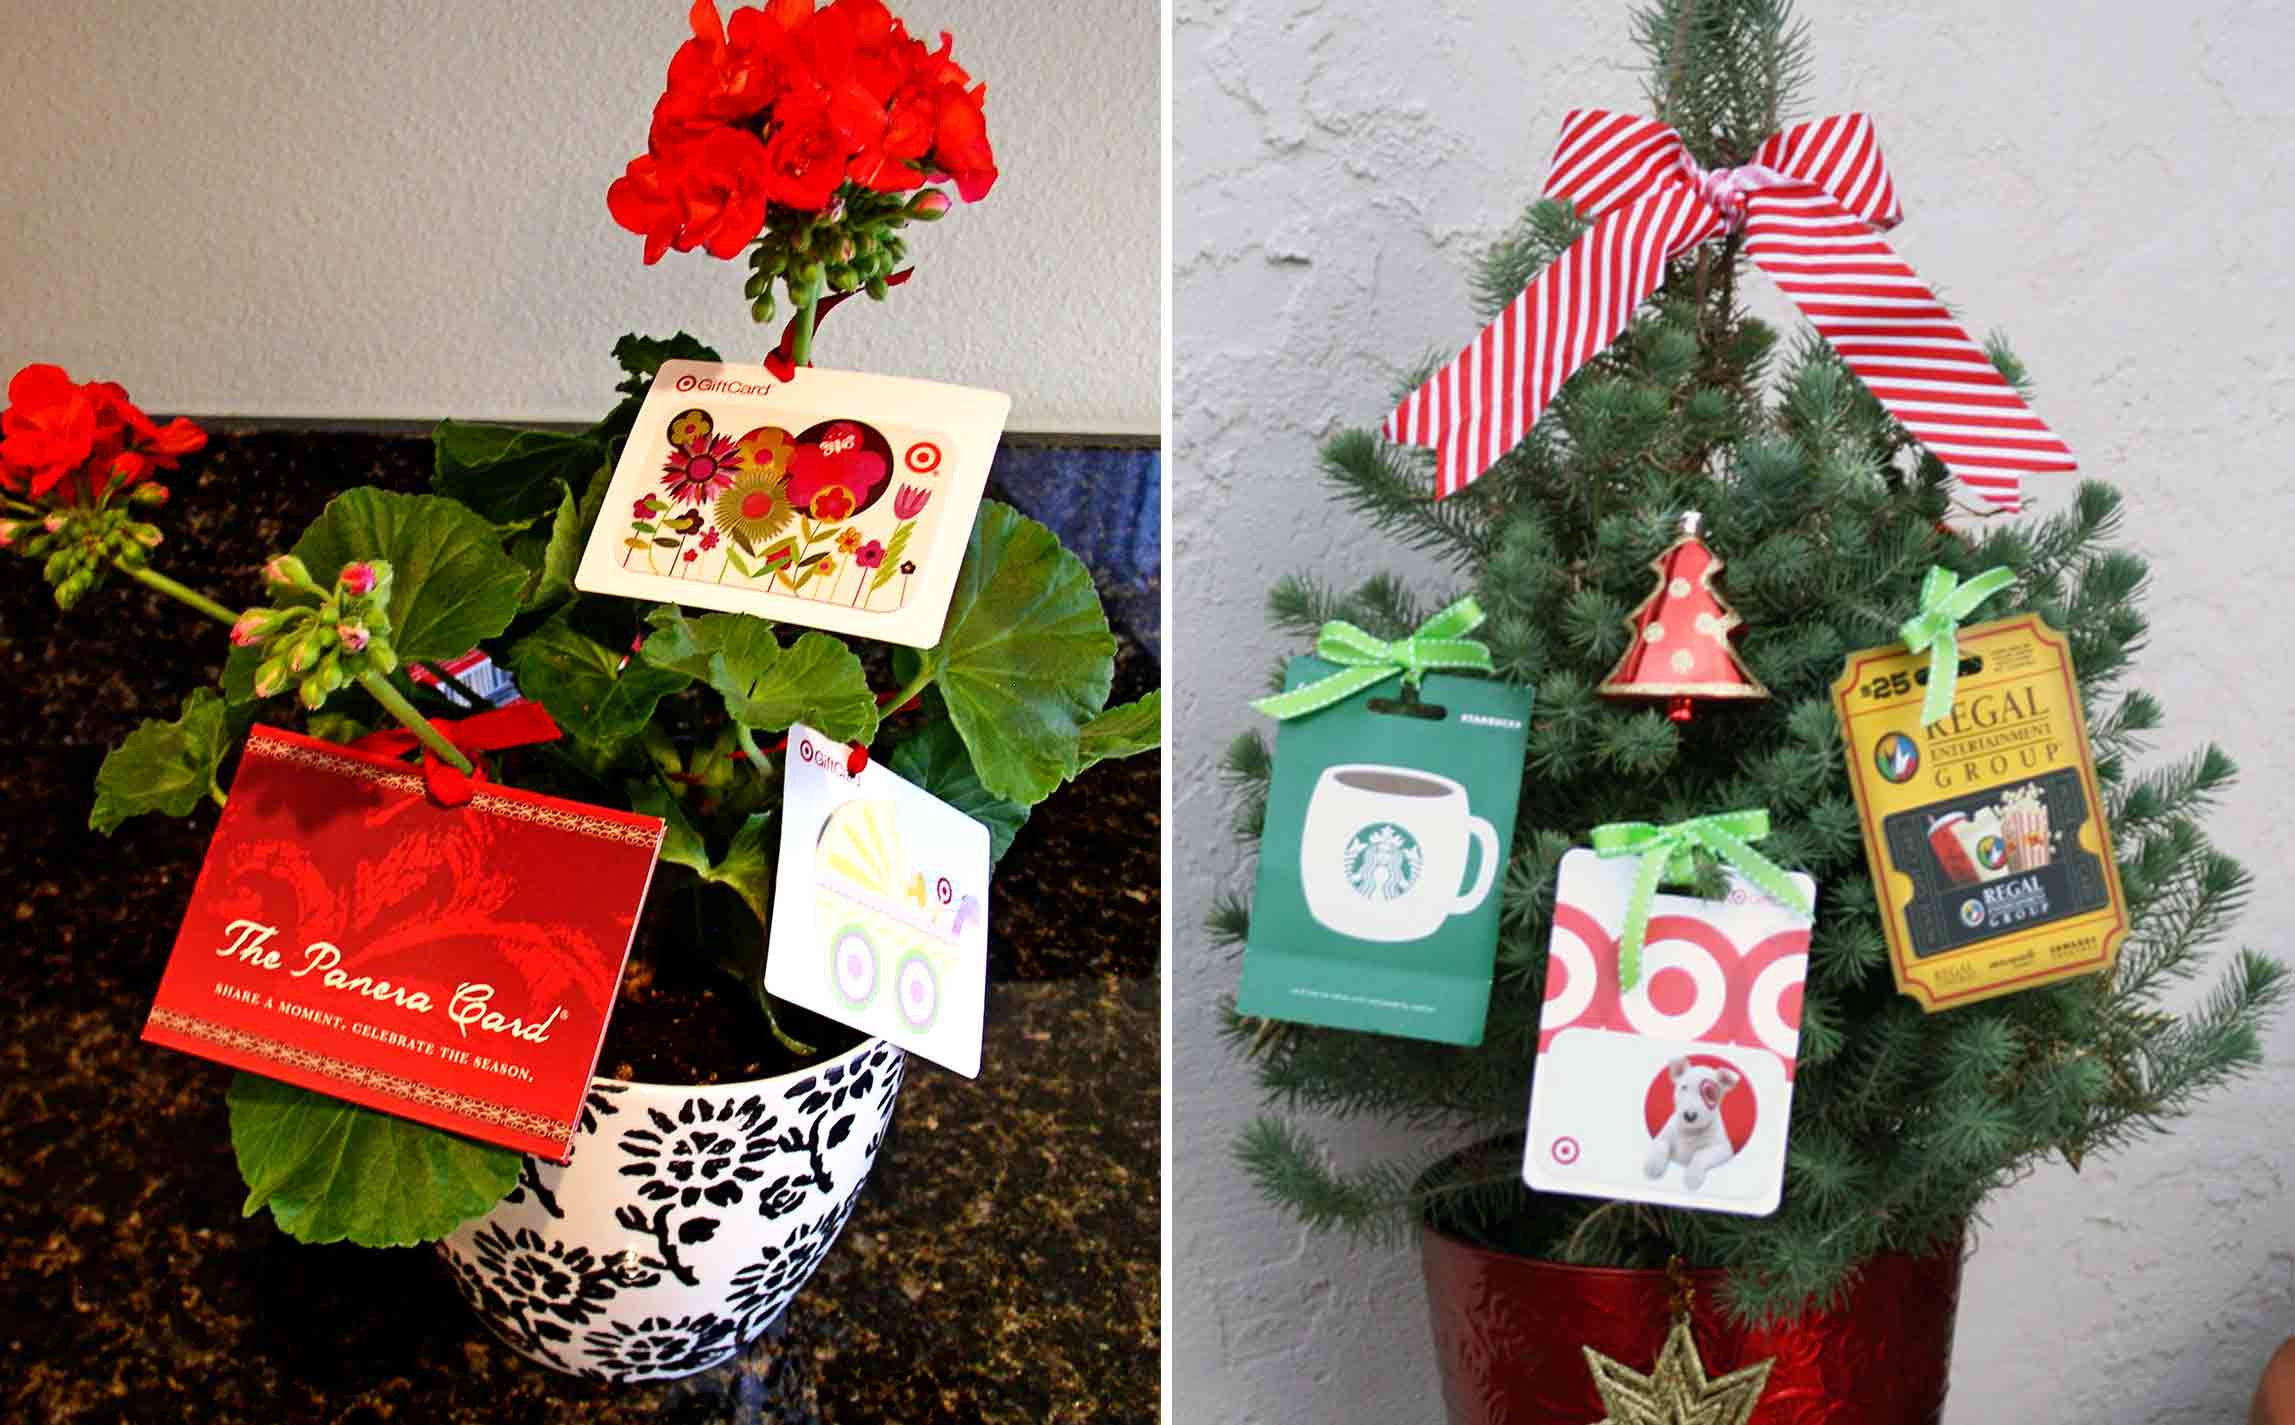 Best ideas about Creative Ideas For Presenting Gift Cards . Save or Pin The Best Gift Card Tree and Gift Card Wreaths Ever Now.